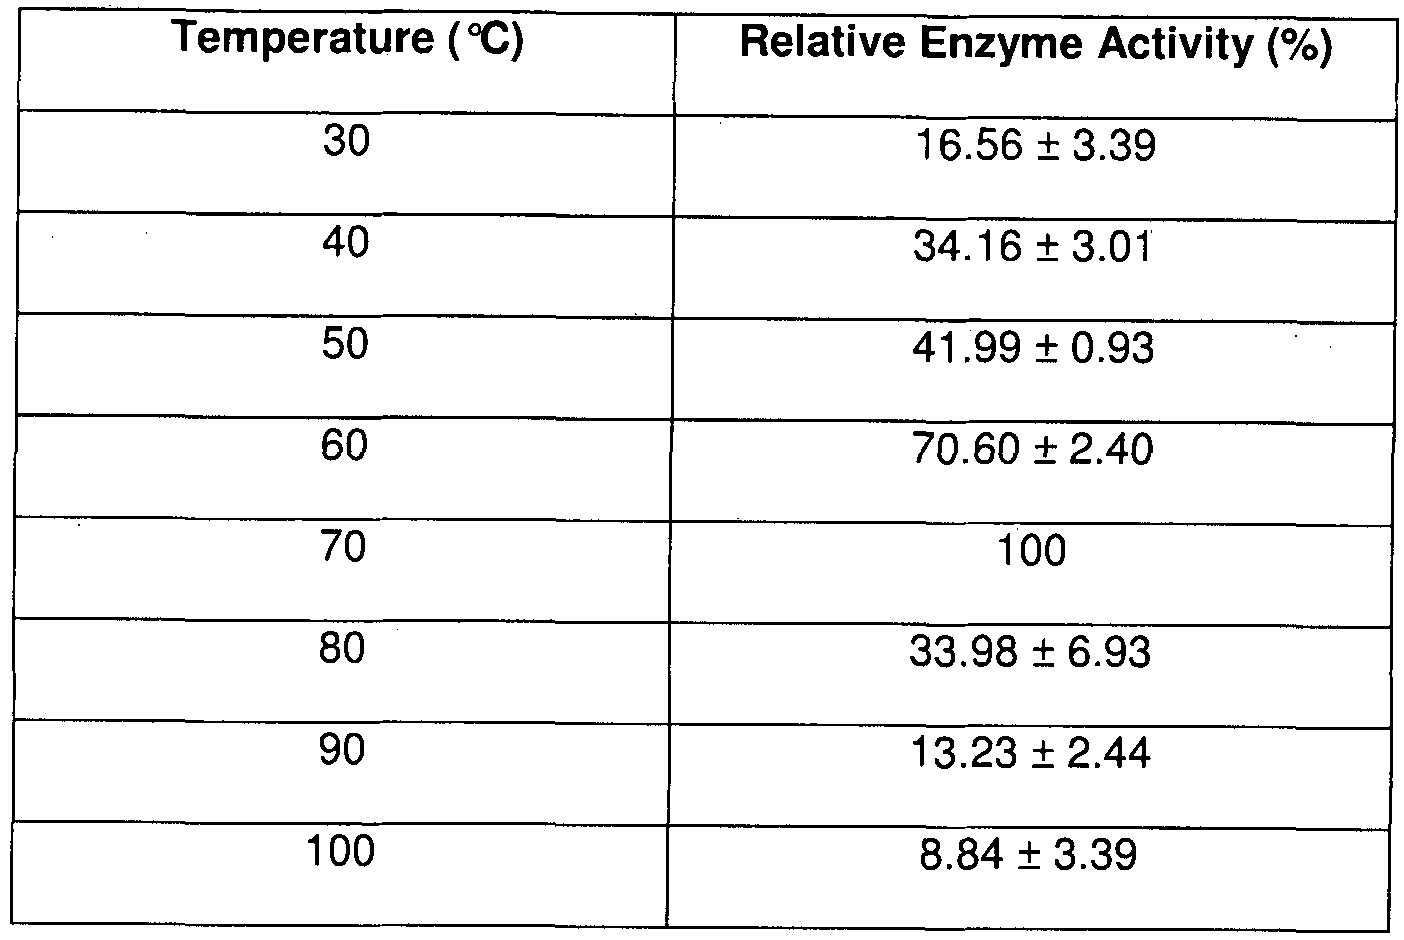 how temperature affects amylase activity How temperature affects enzyme activity mr riddz science ib biology rate of enzyme amylase activity, hydrolysis of starch by amylase - duration.